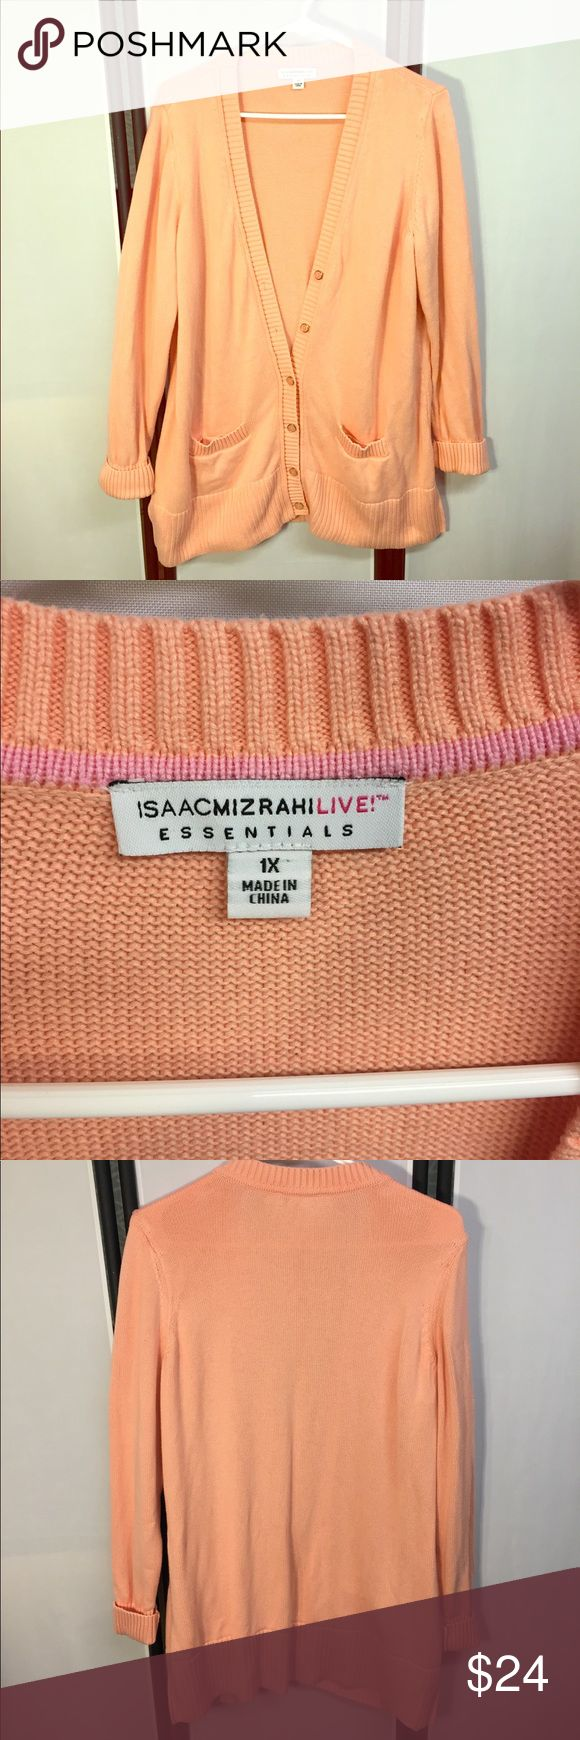 Isaac Mizrahi Long Knit Coral Cardigan Sweater 1X Isaac Mizrahi Long Knit Coral Cardigan Sweater. Size 1X. Beautiful comfy and cozy long Button Cardigan. Perfect for winter.  Excellent very gently worn condition. Isaac Mizrahi Sweaters Cardigans